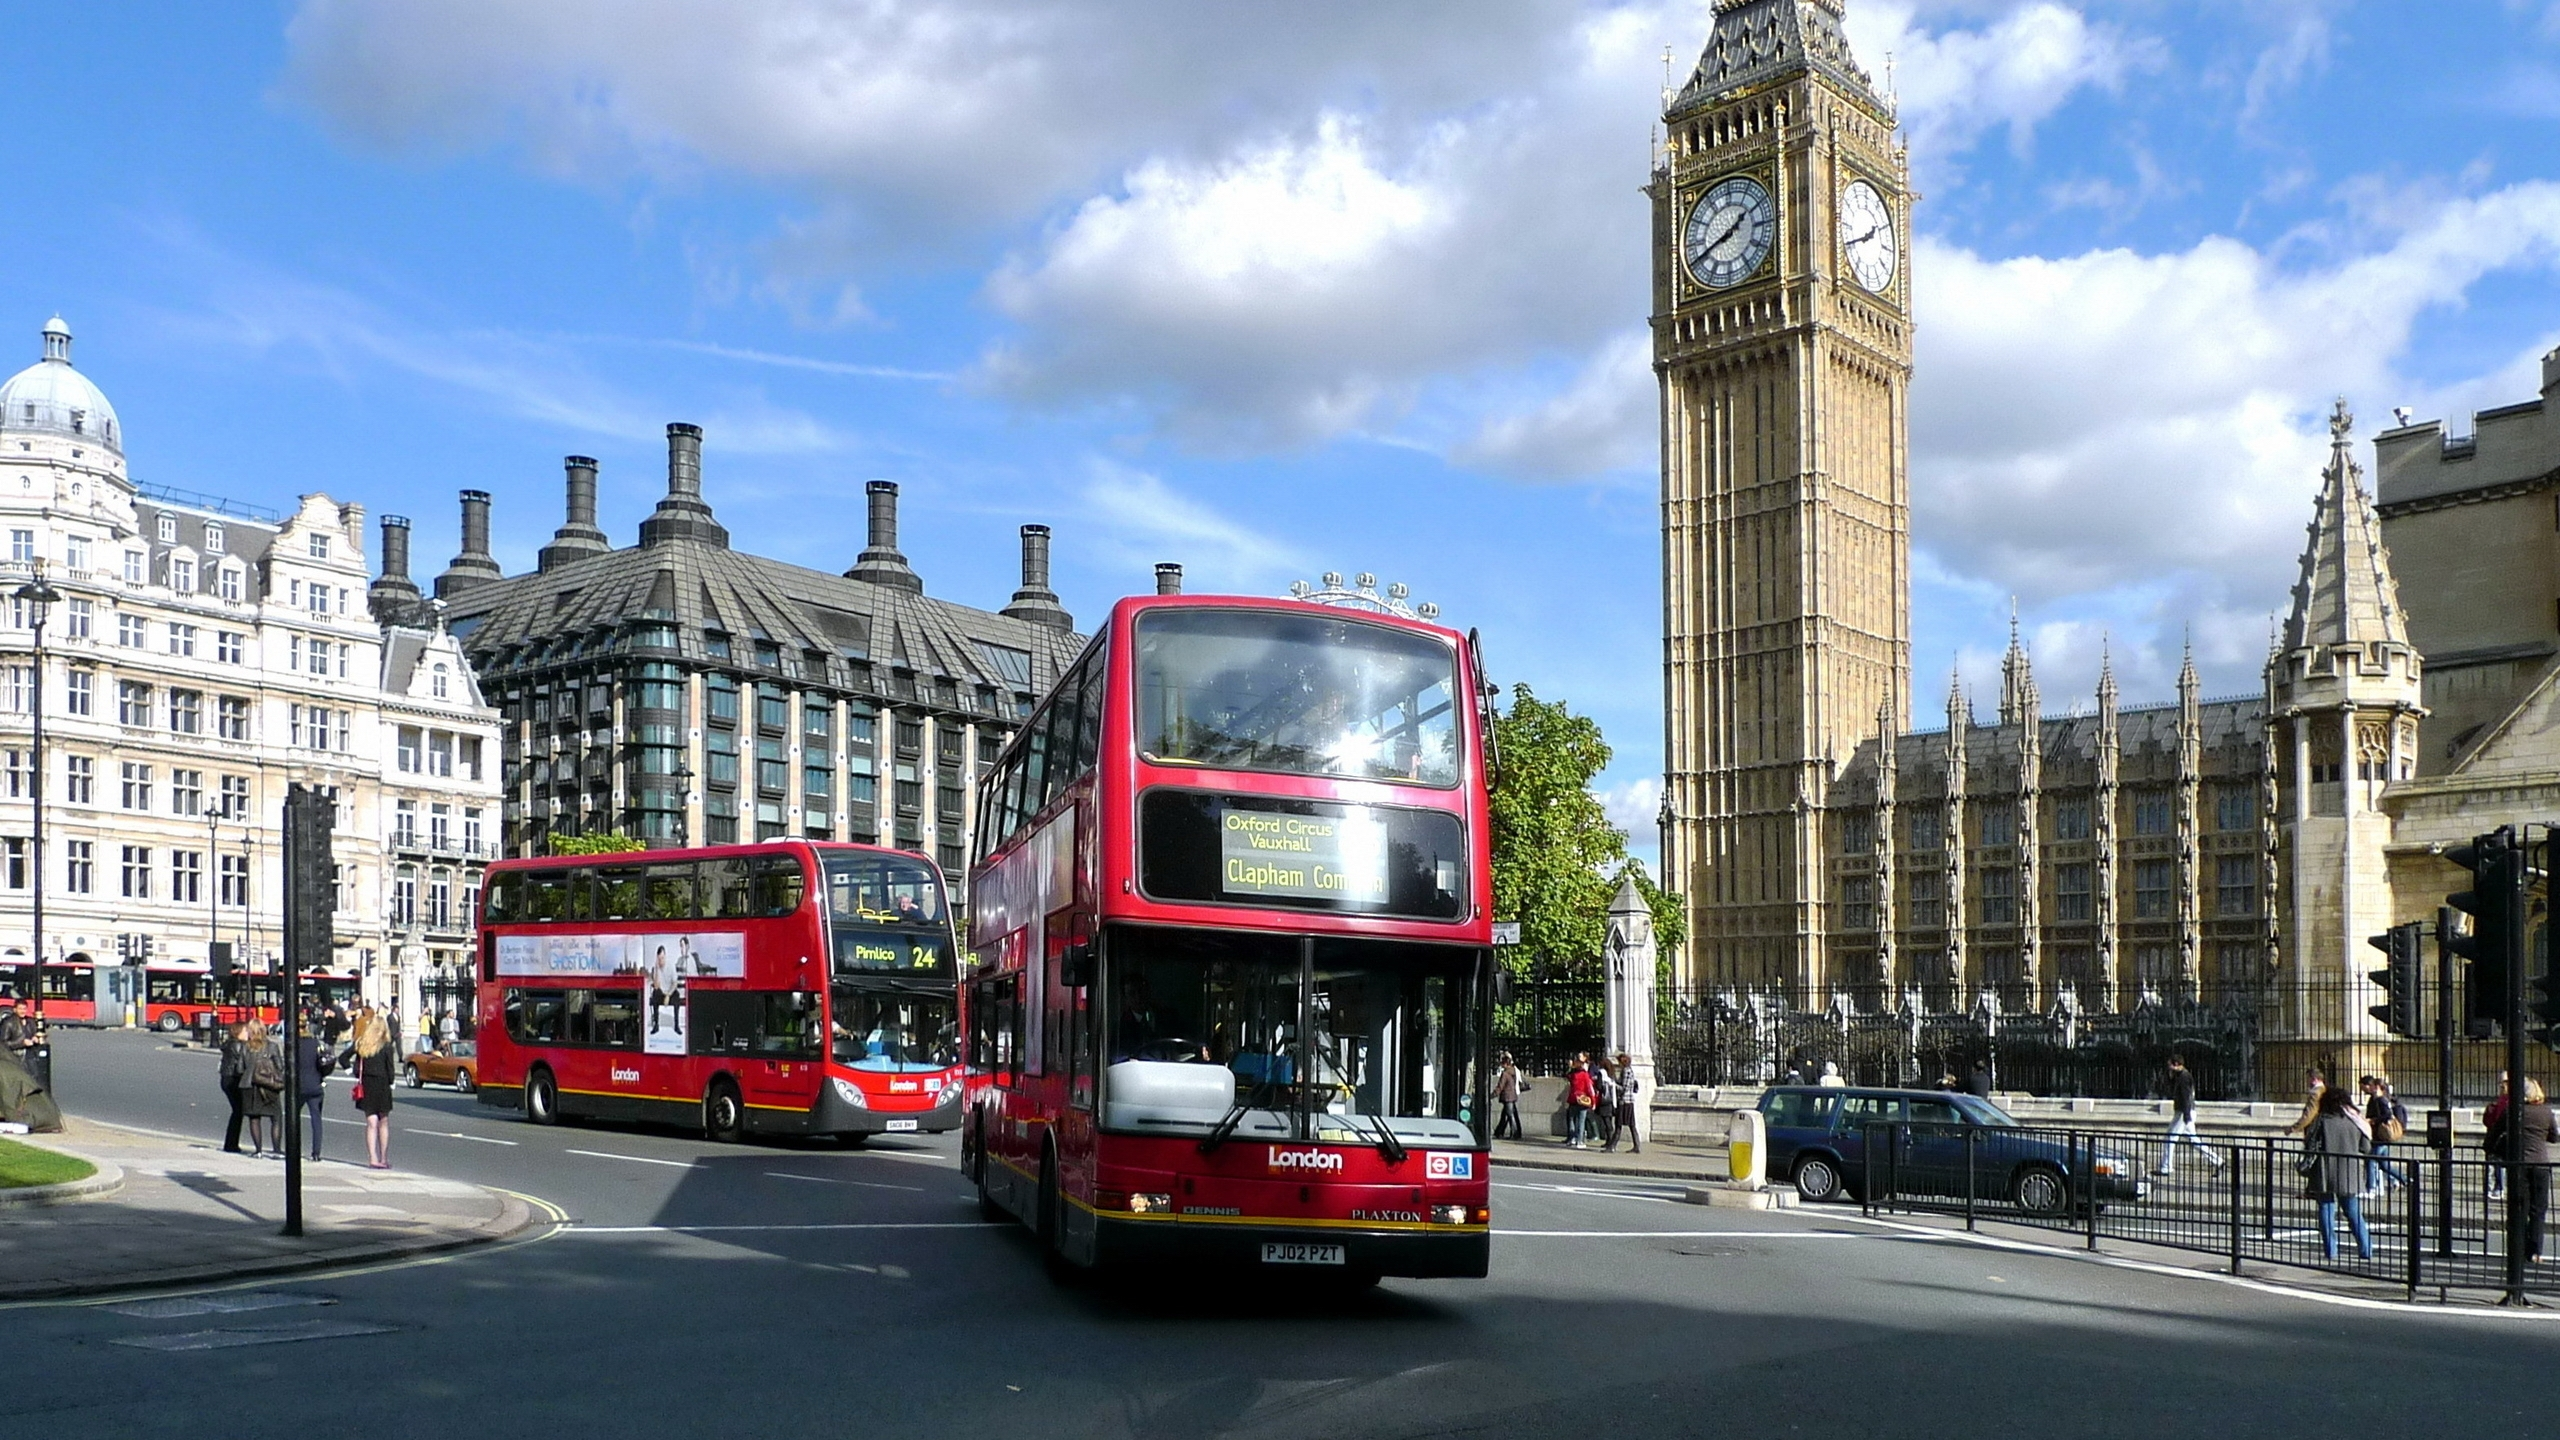 London Buses for 2560x1440 HDTV resolution